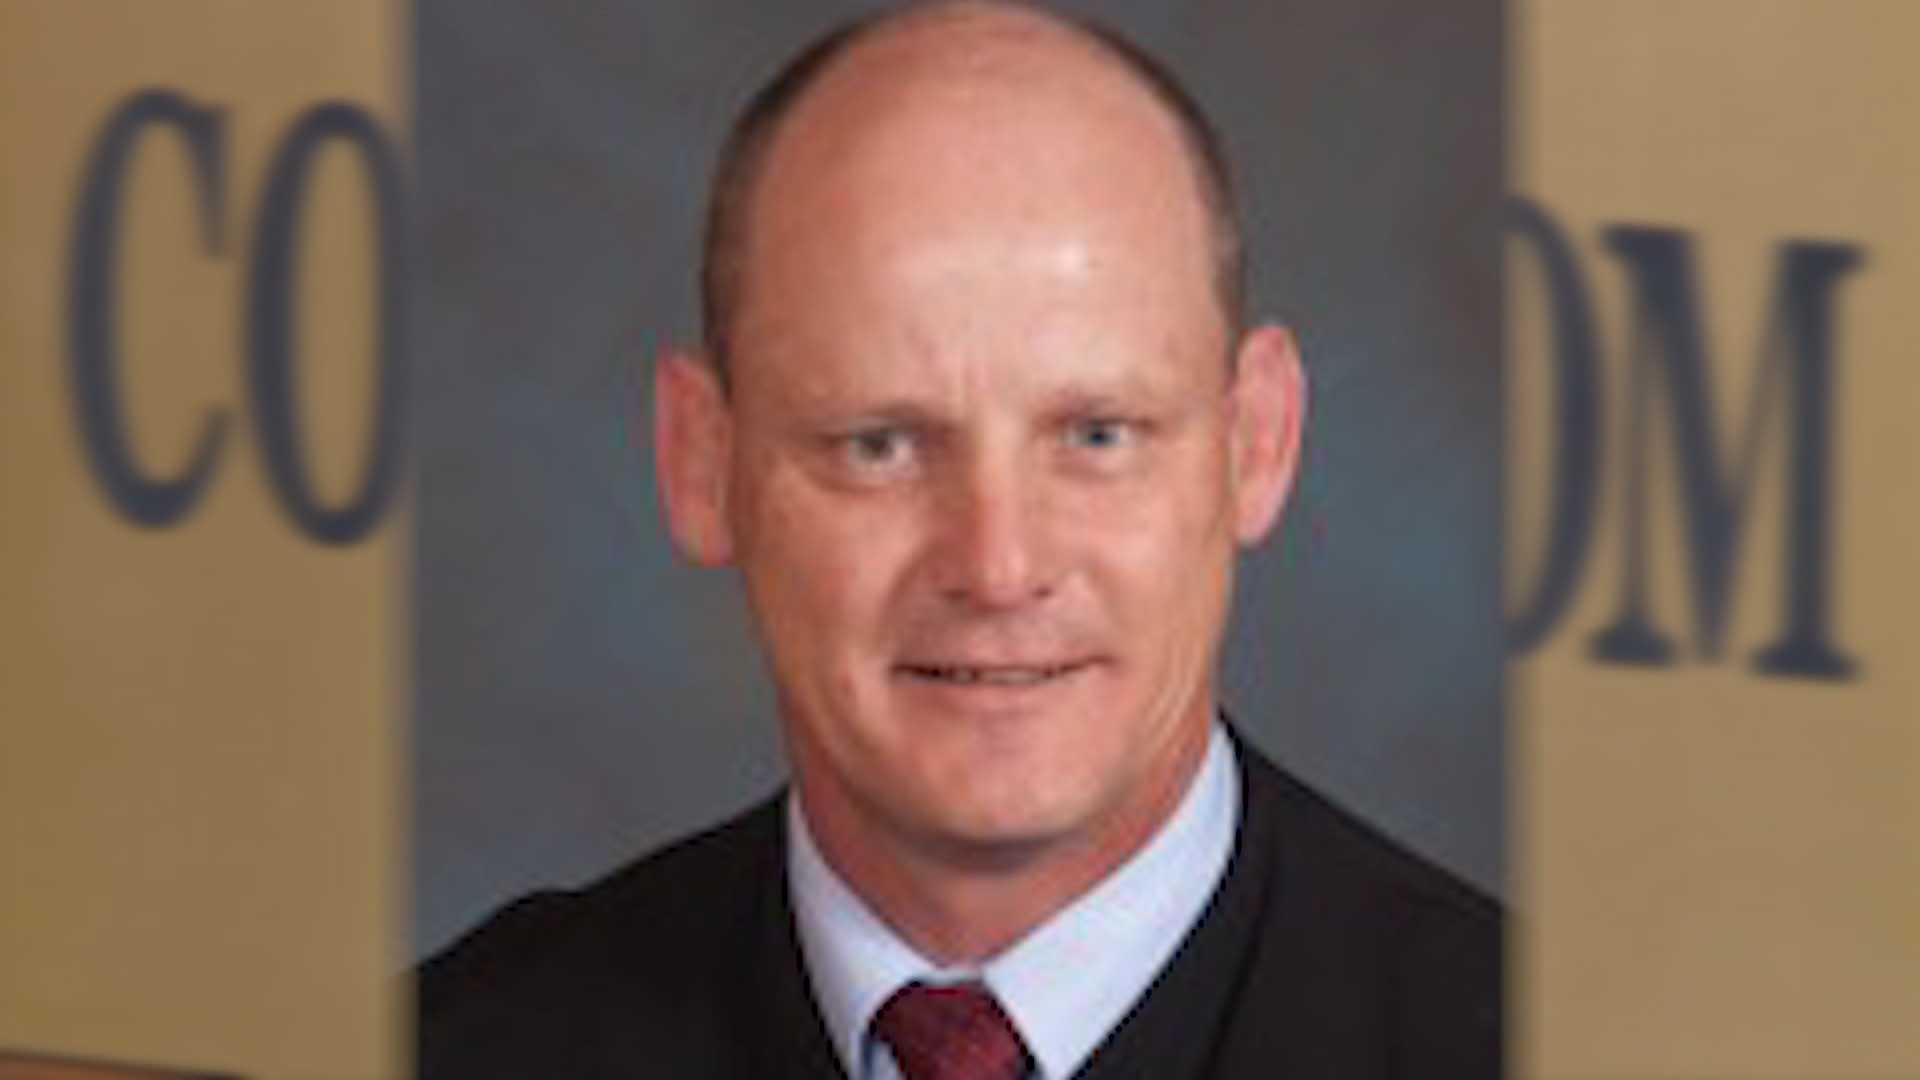 Judge William Pearson